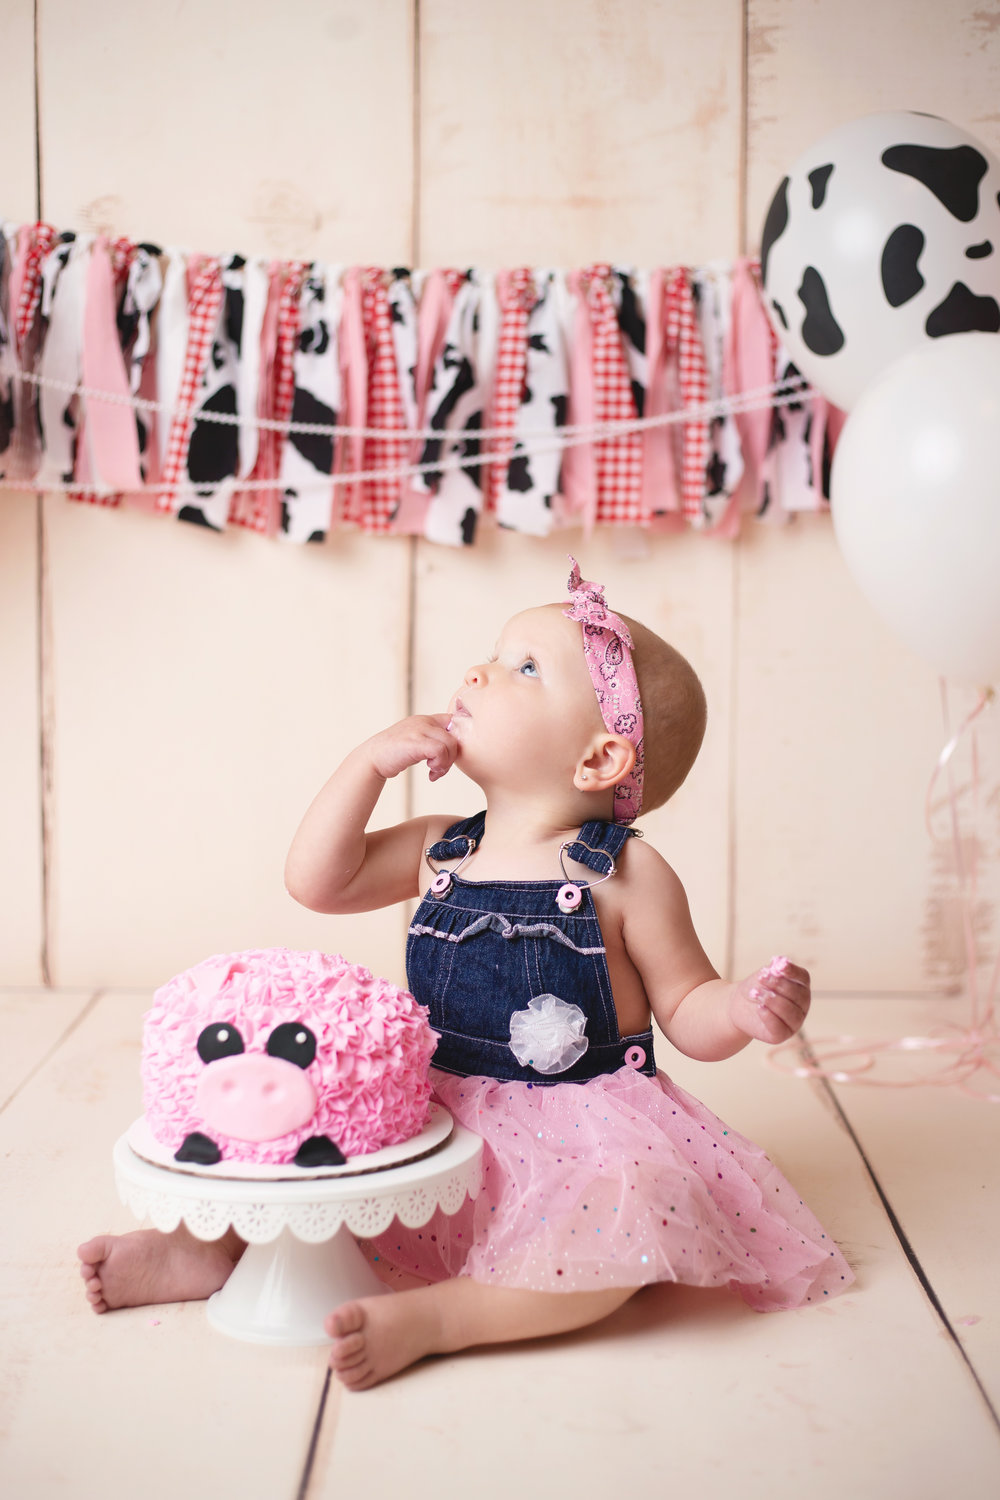 anchorage-cake-smash-photographer-4.jpg